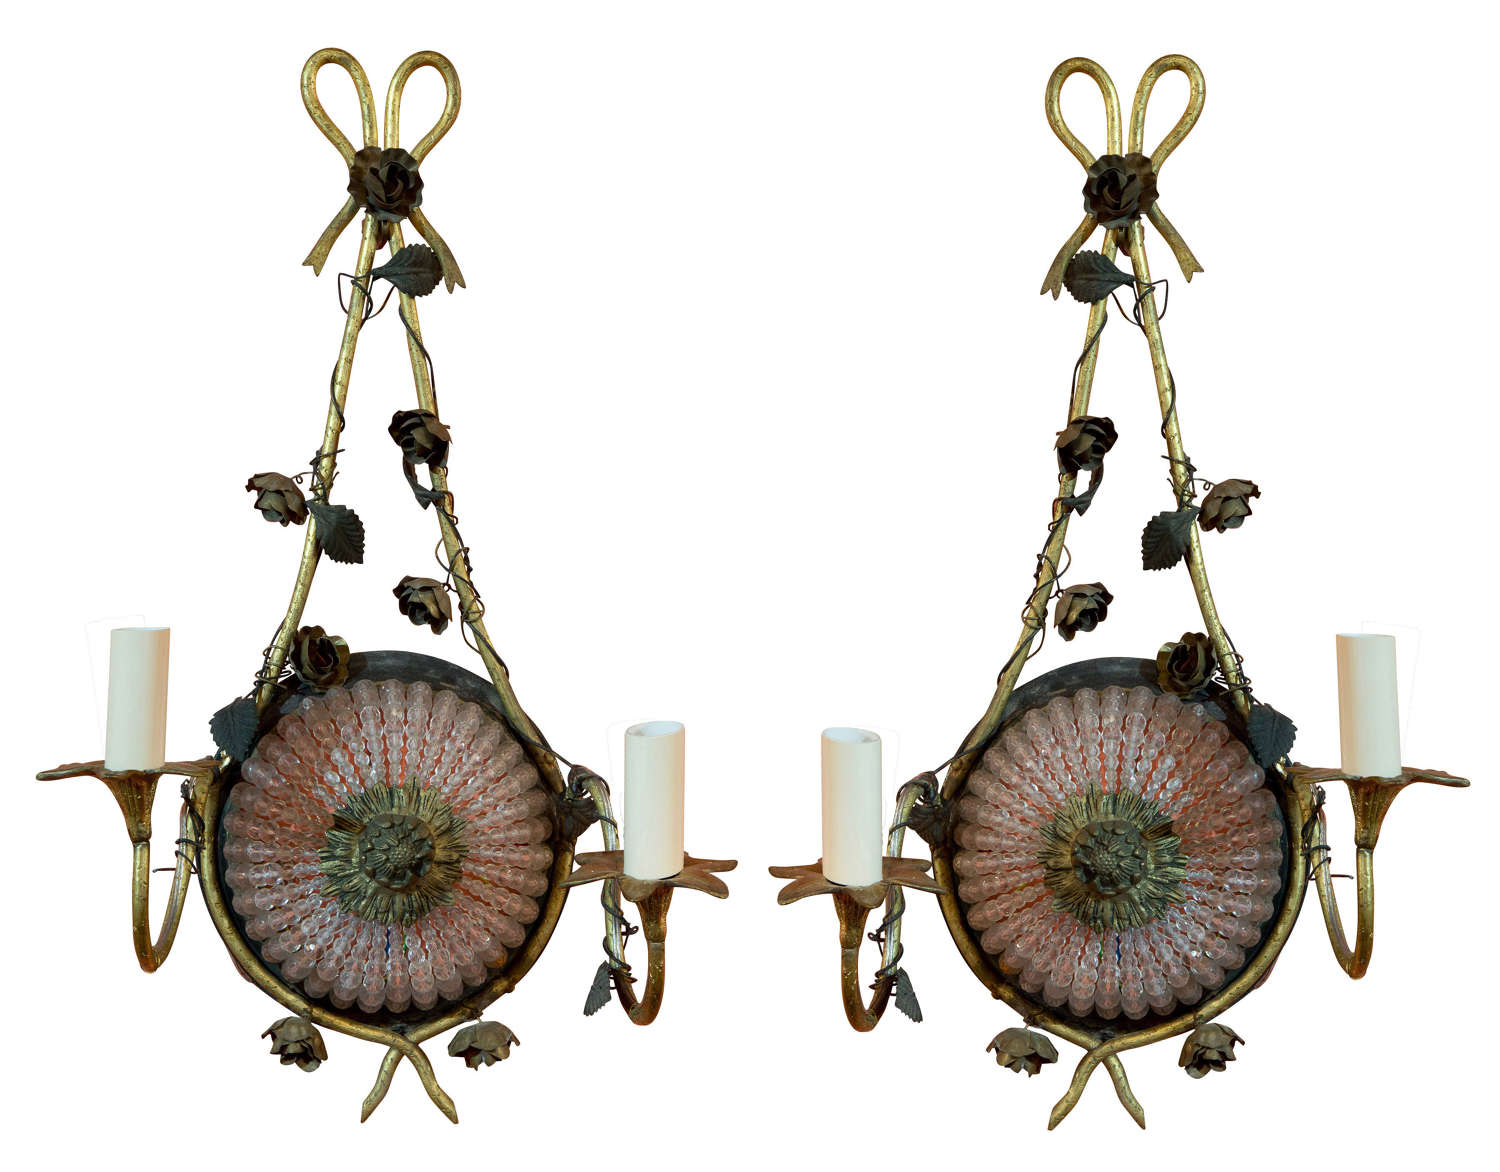 Pair of French decorative wall sconces decorated with flowers c1900